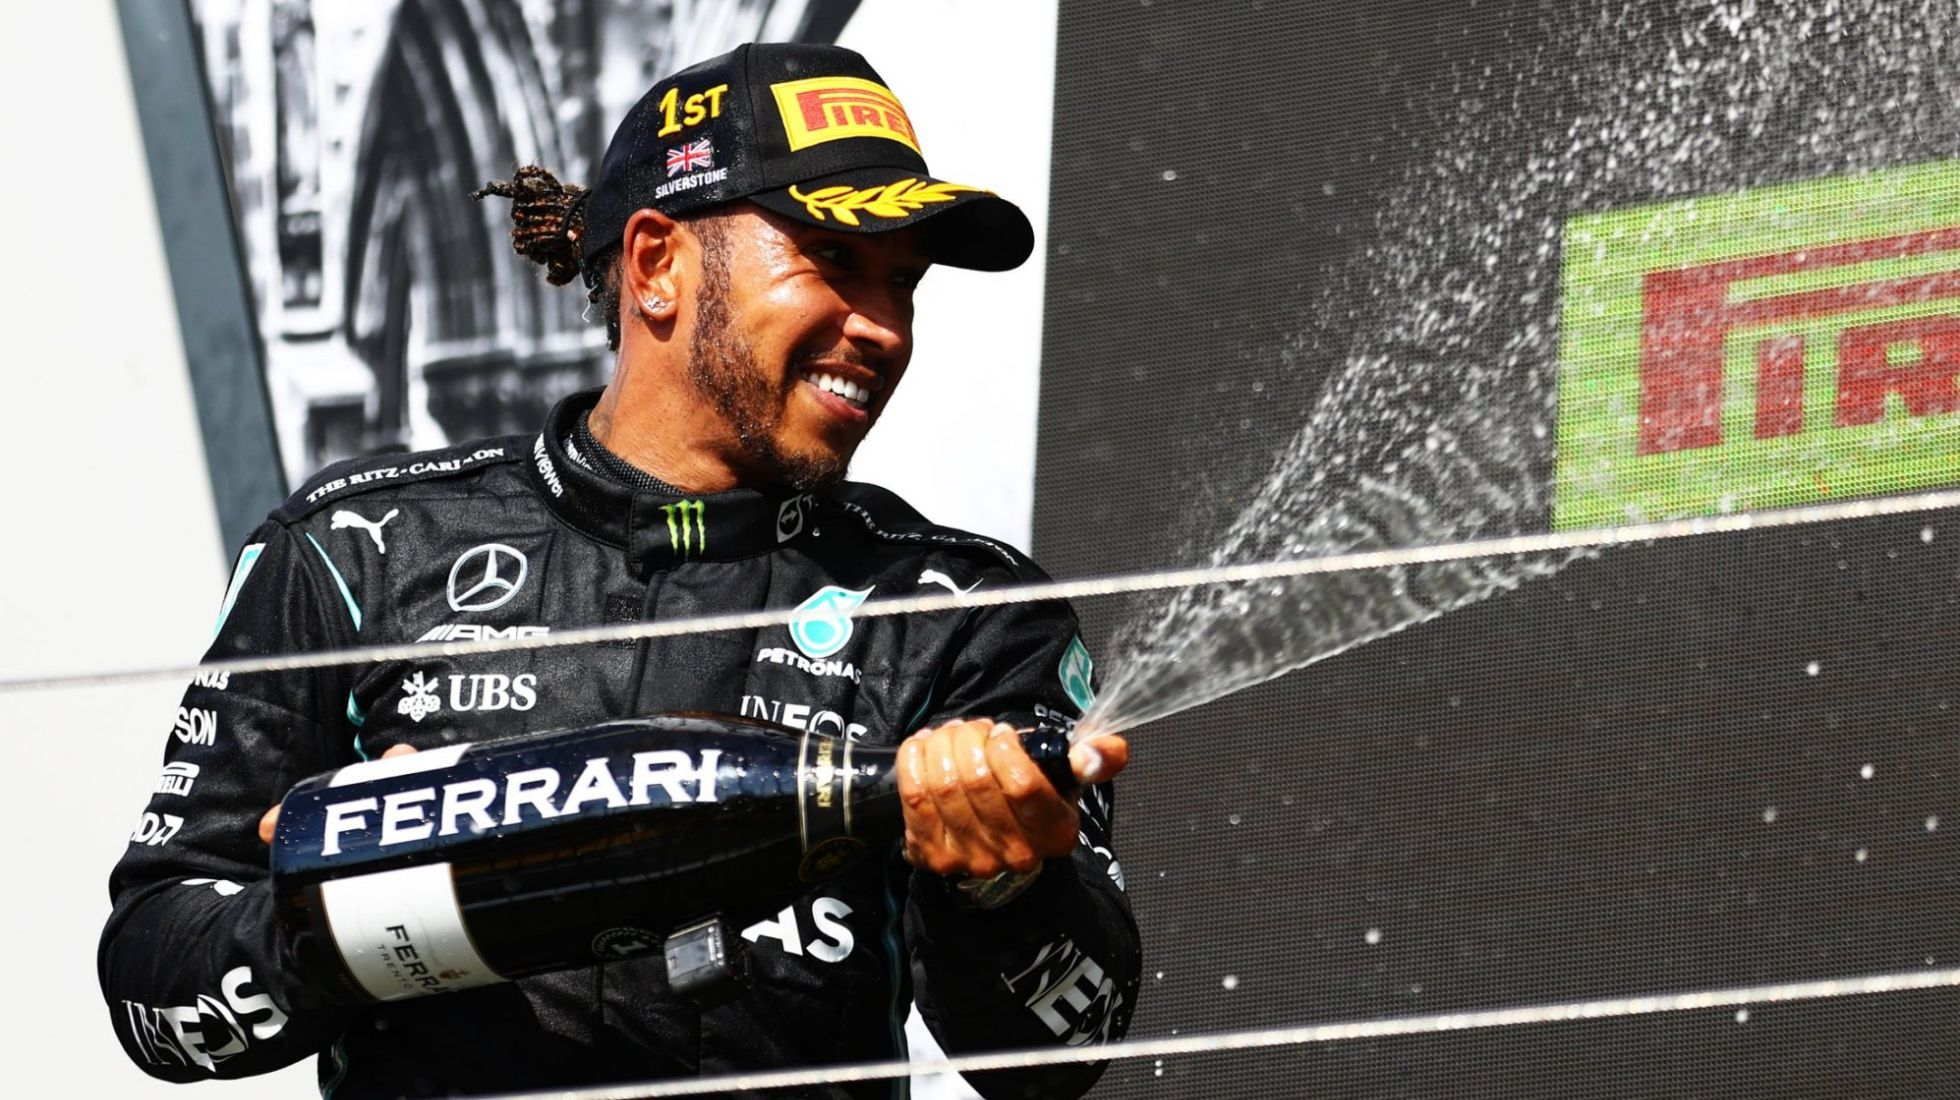 Hamilton wins his Home GP in the most controversial circumstances